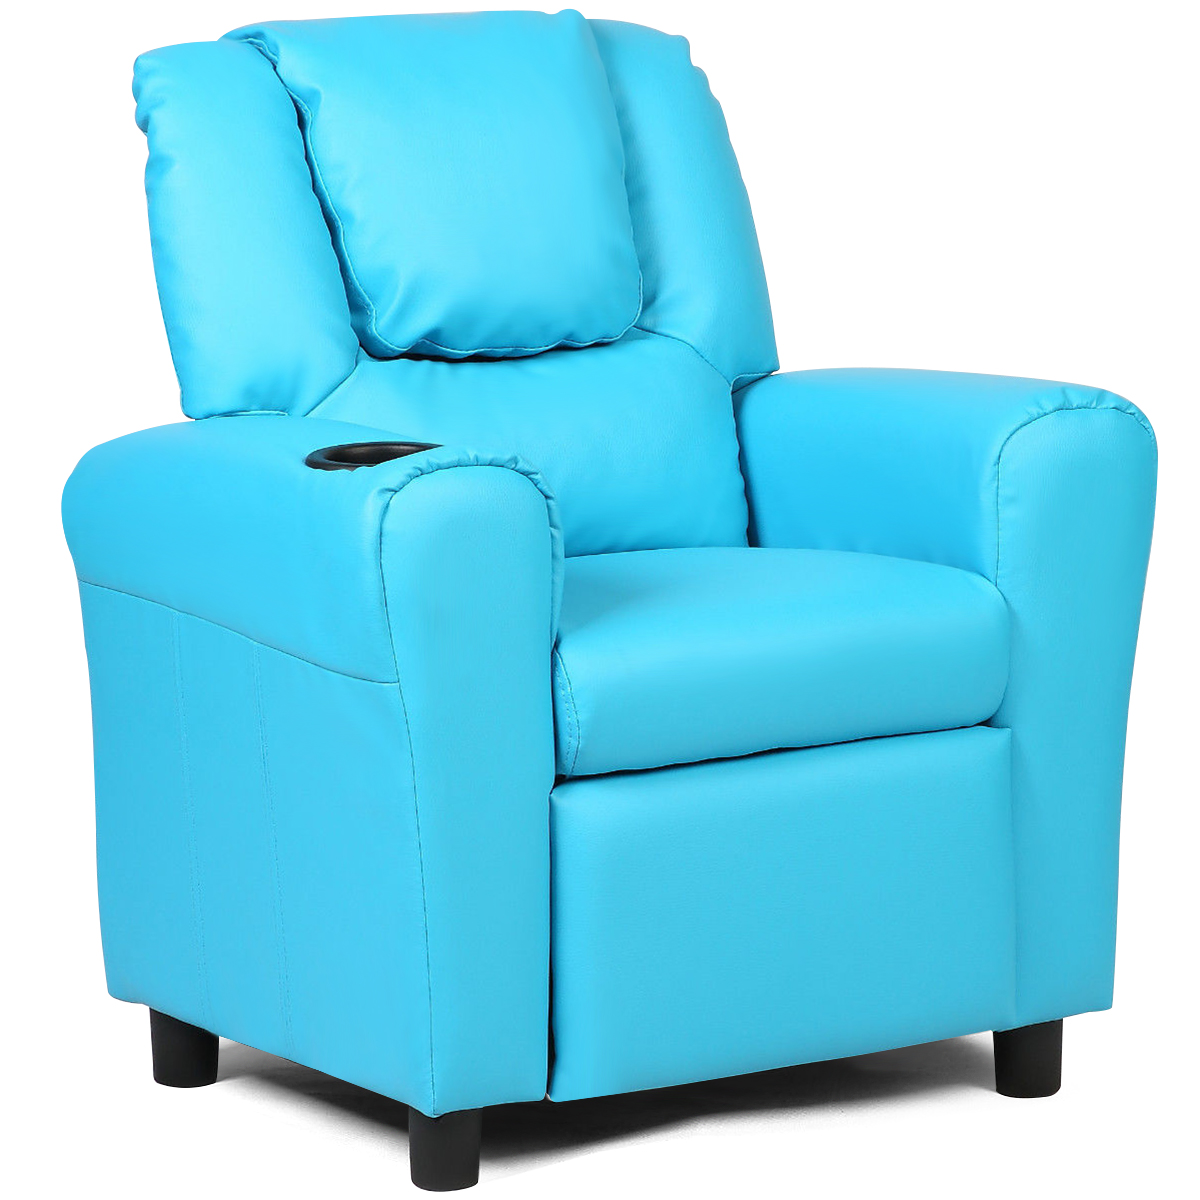 Costway Kids Recliner Armchair Childrenu0027s Furniture Sofa Seat Couch Chair  W/Cup Holder Blue